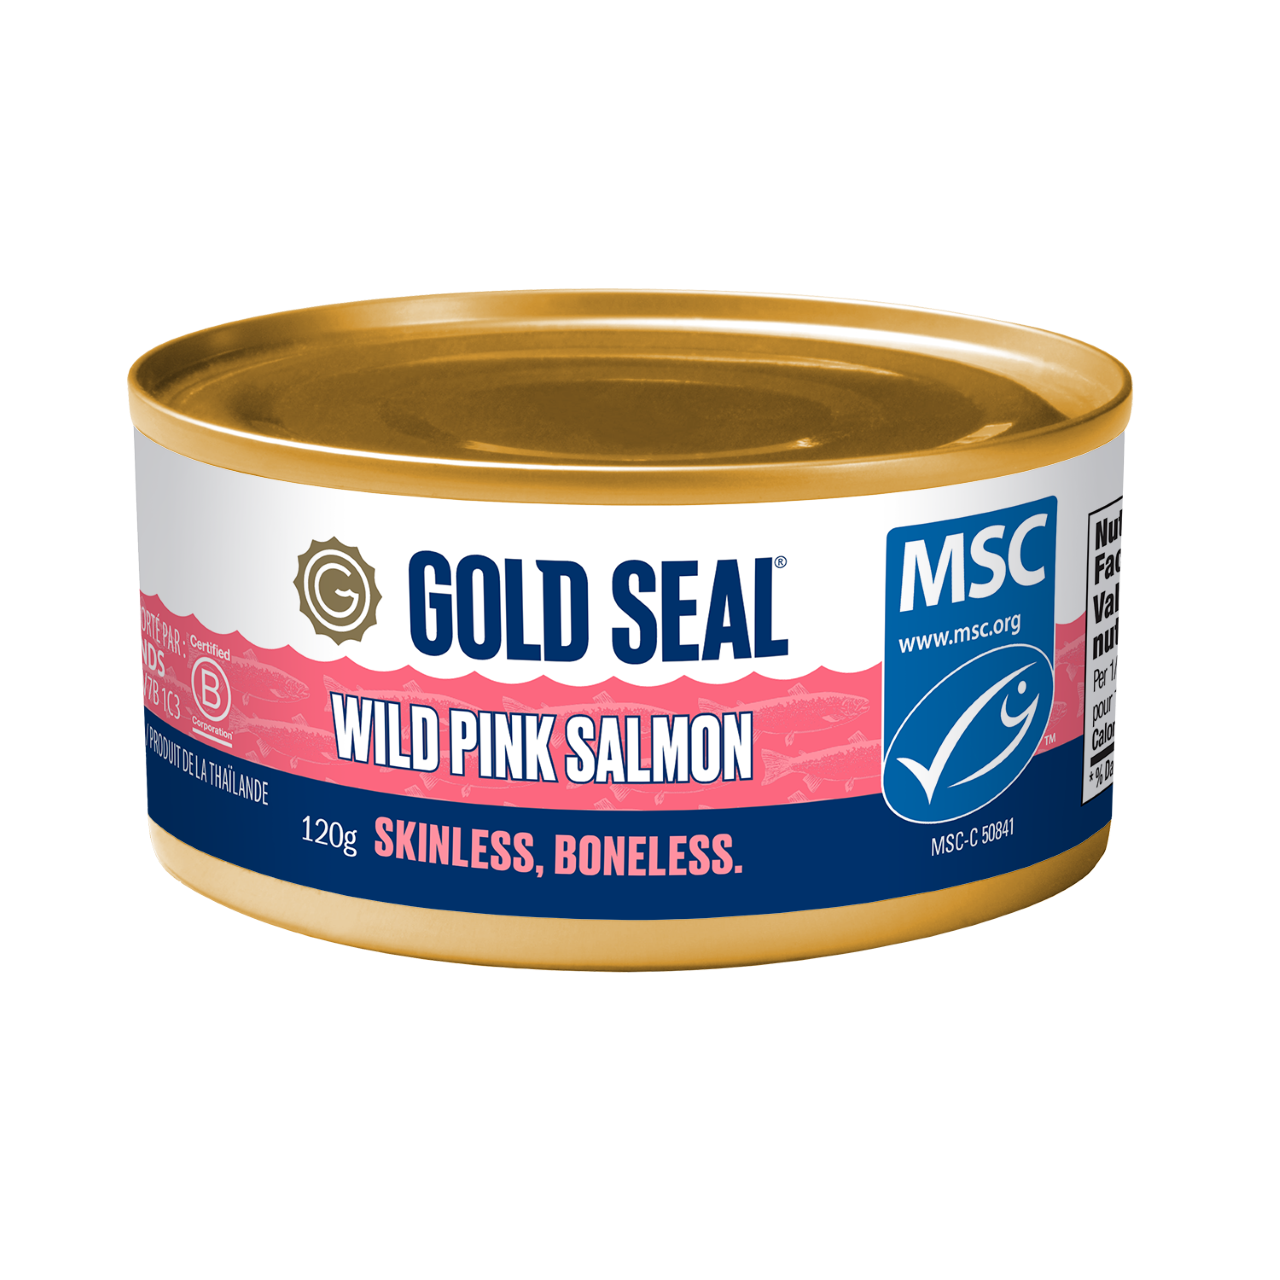 One can of Gold Seal Skinless and Boneless Wild Pink Salmon